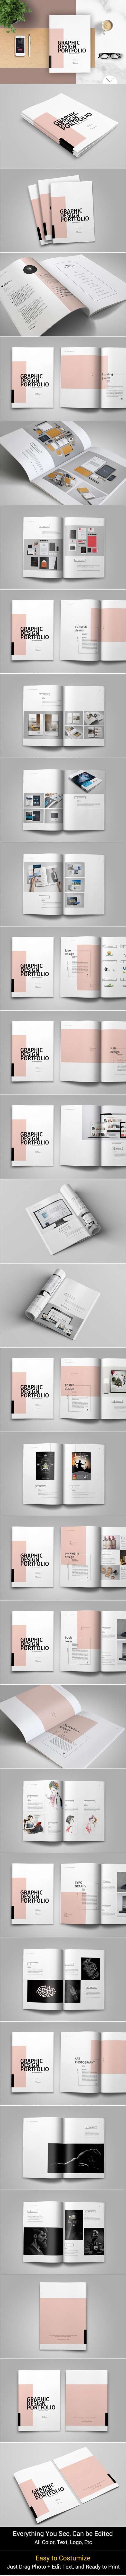 This is 48 page minimal brochure template is for designers working on product/graphic design portfolios, interior design, catalogues, product catalogues, and agency based projects. Just drop in your own pictures and texts, and it's ready for print. Or use…